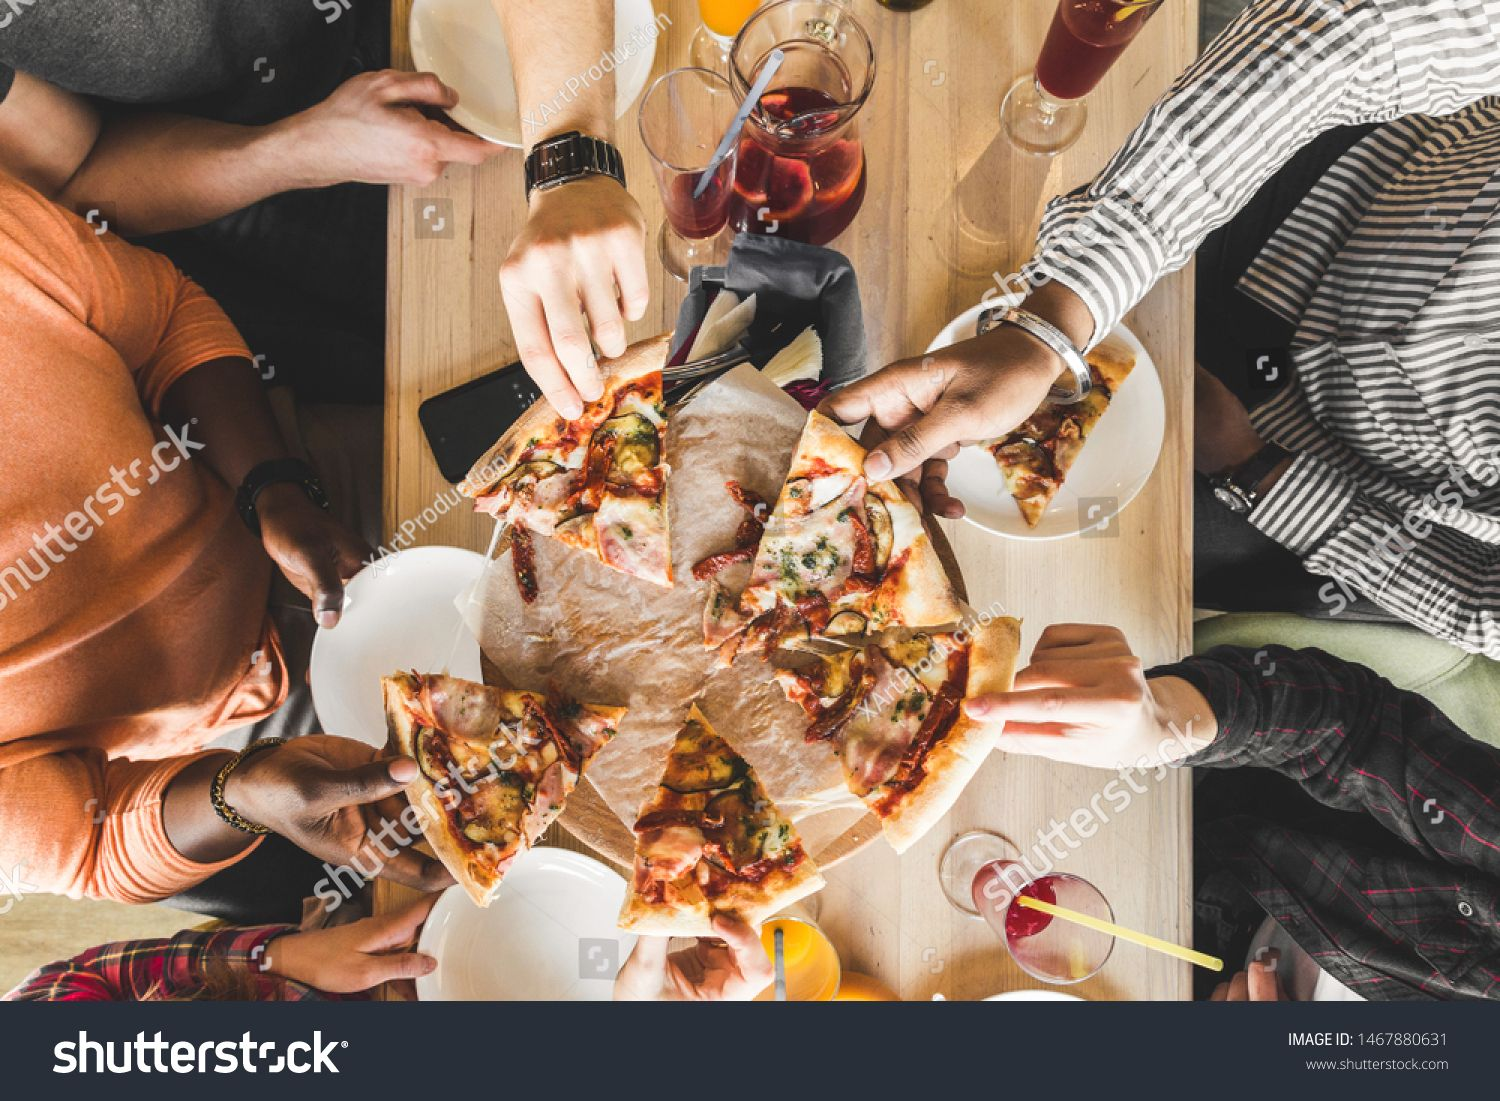 A company of multicultural young people in a cafe eating pizza, drinking cocktails, having fun #Sponsored , #ad, #people#cafe#young#company